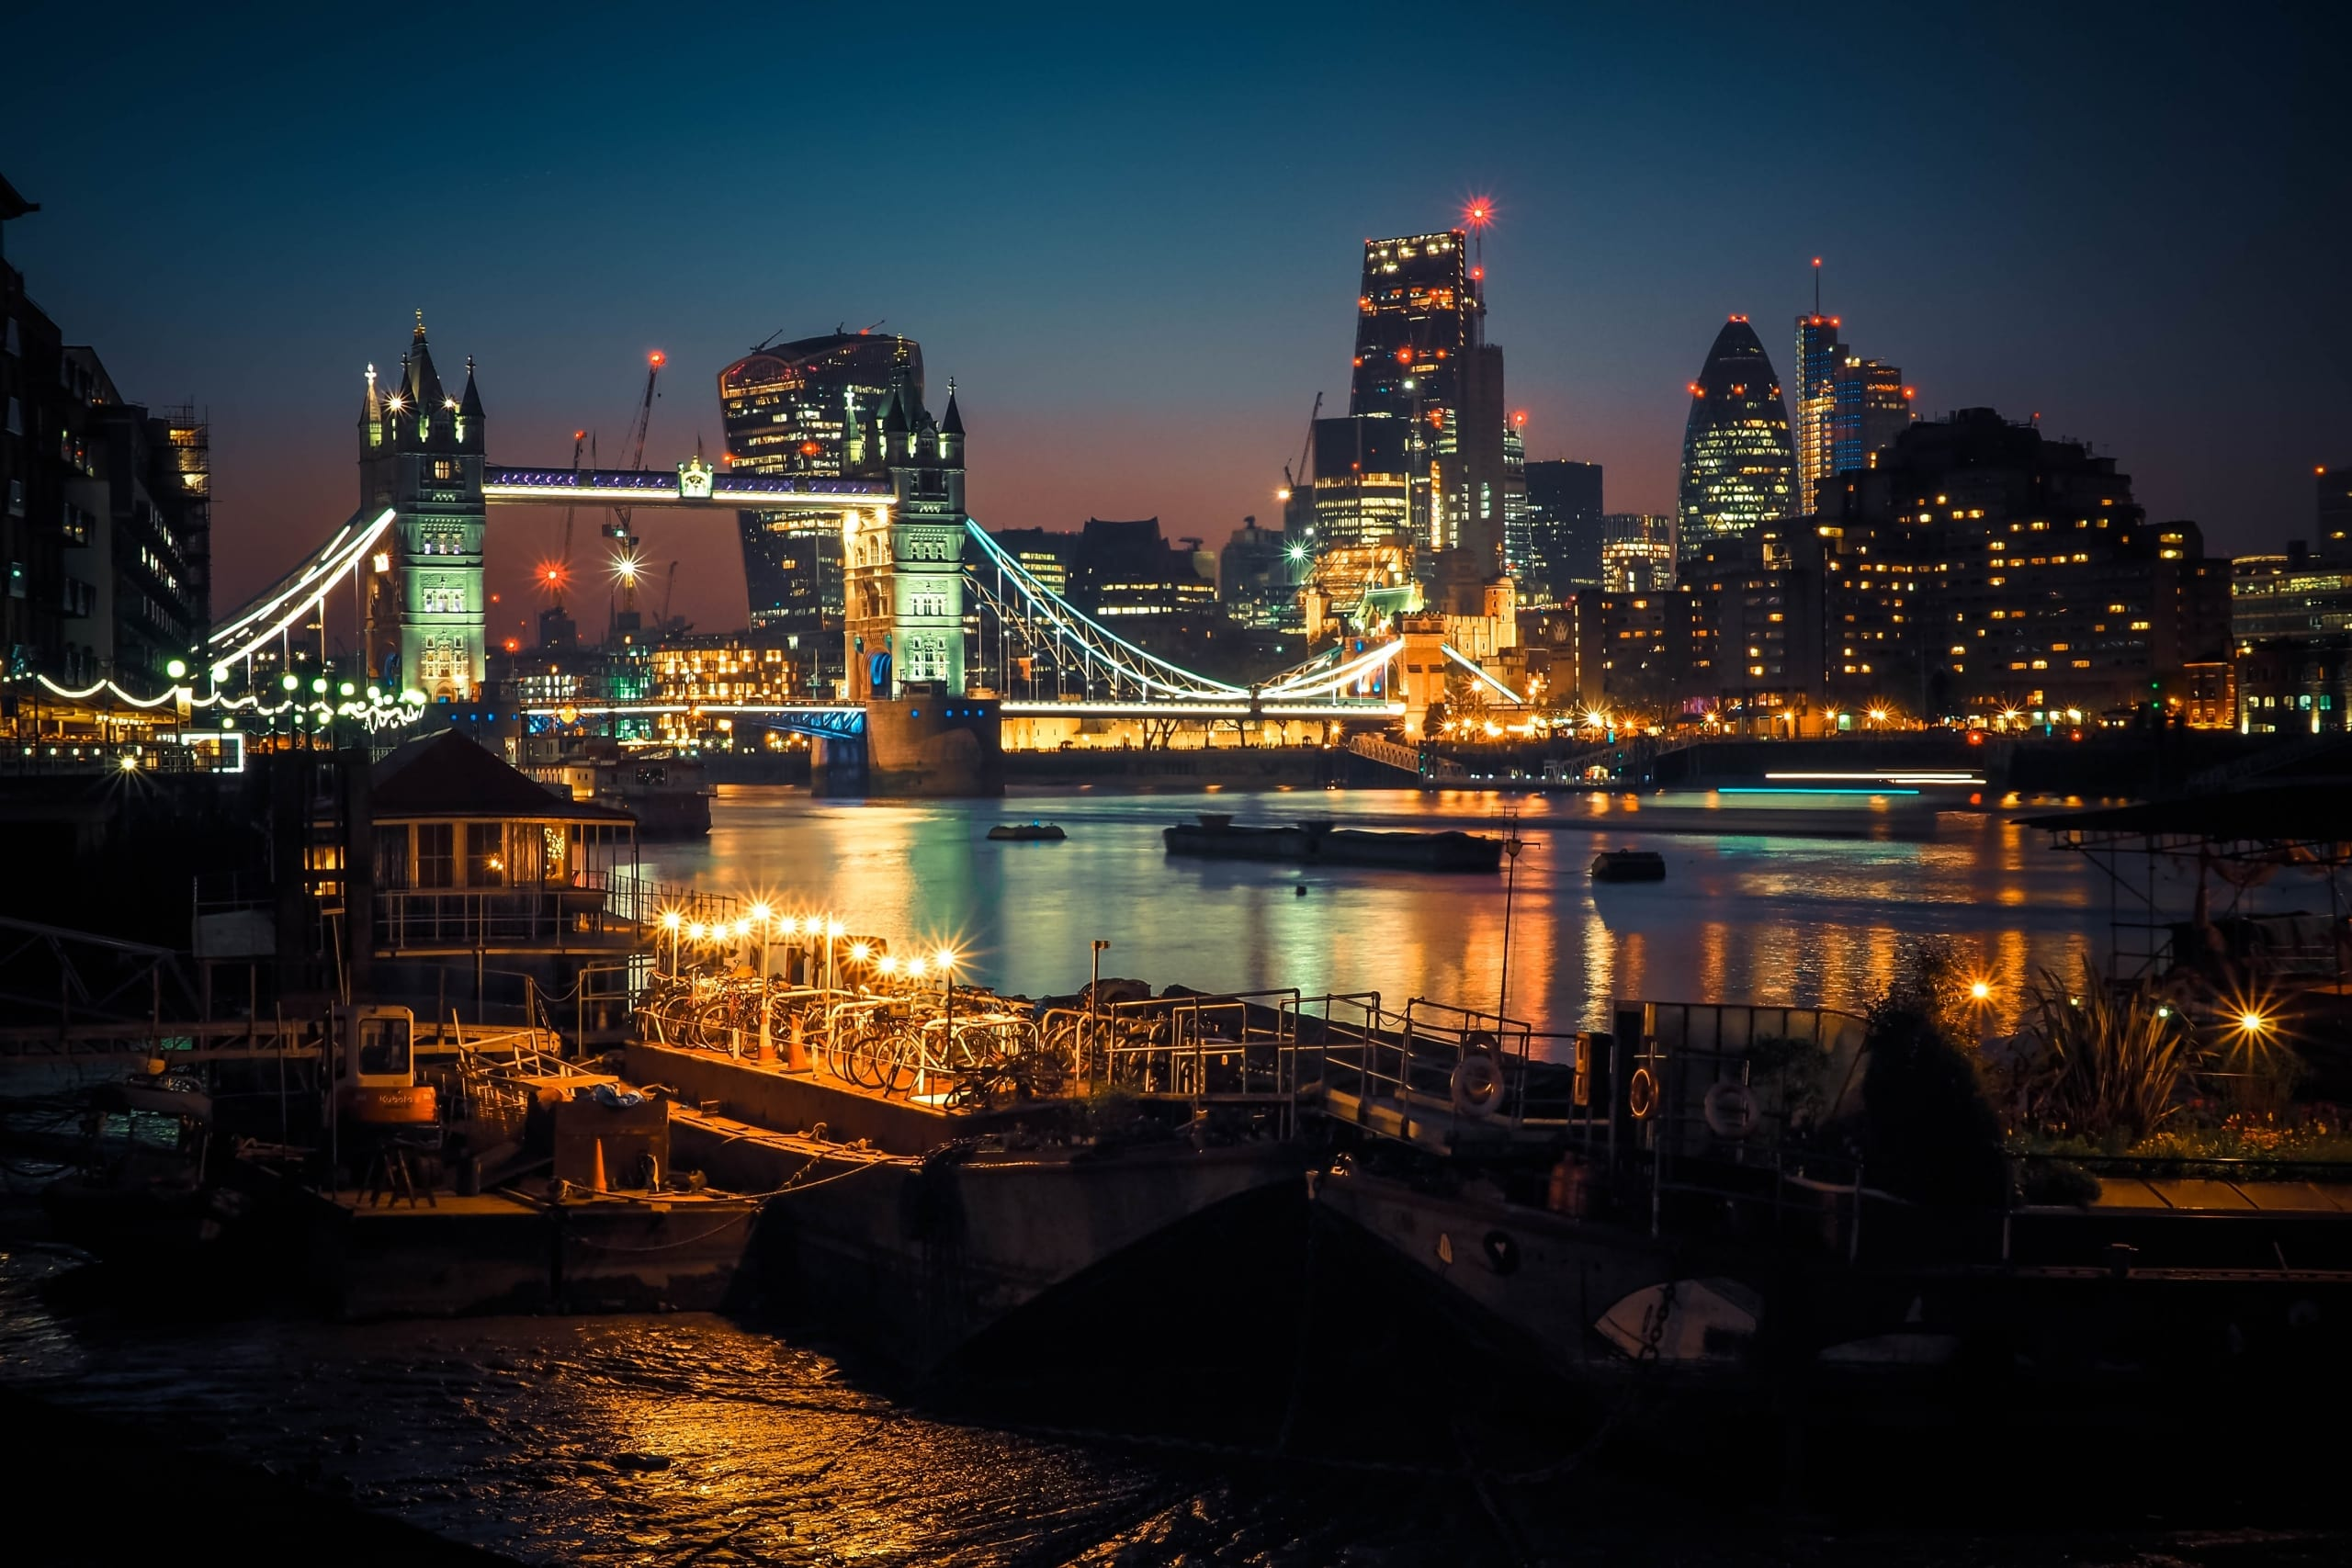 View of the Tower Bridge in London at night